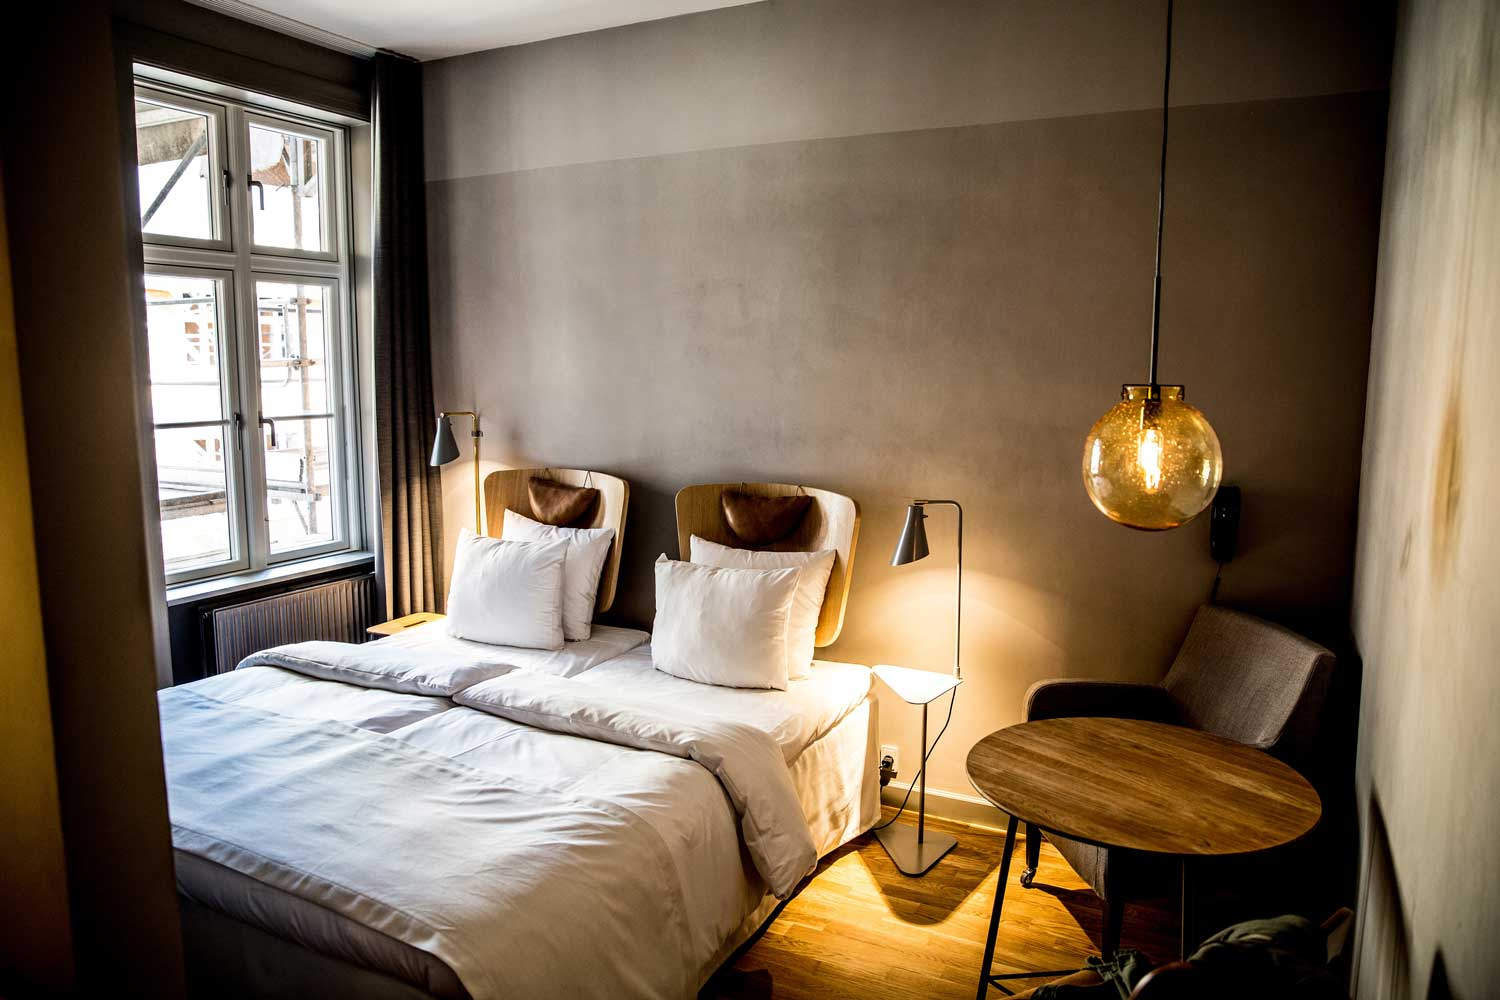 Hotel sp34 copenhagen denmark yellowtrace for Design hotel definizione